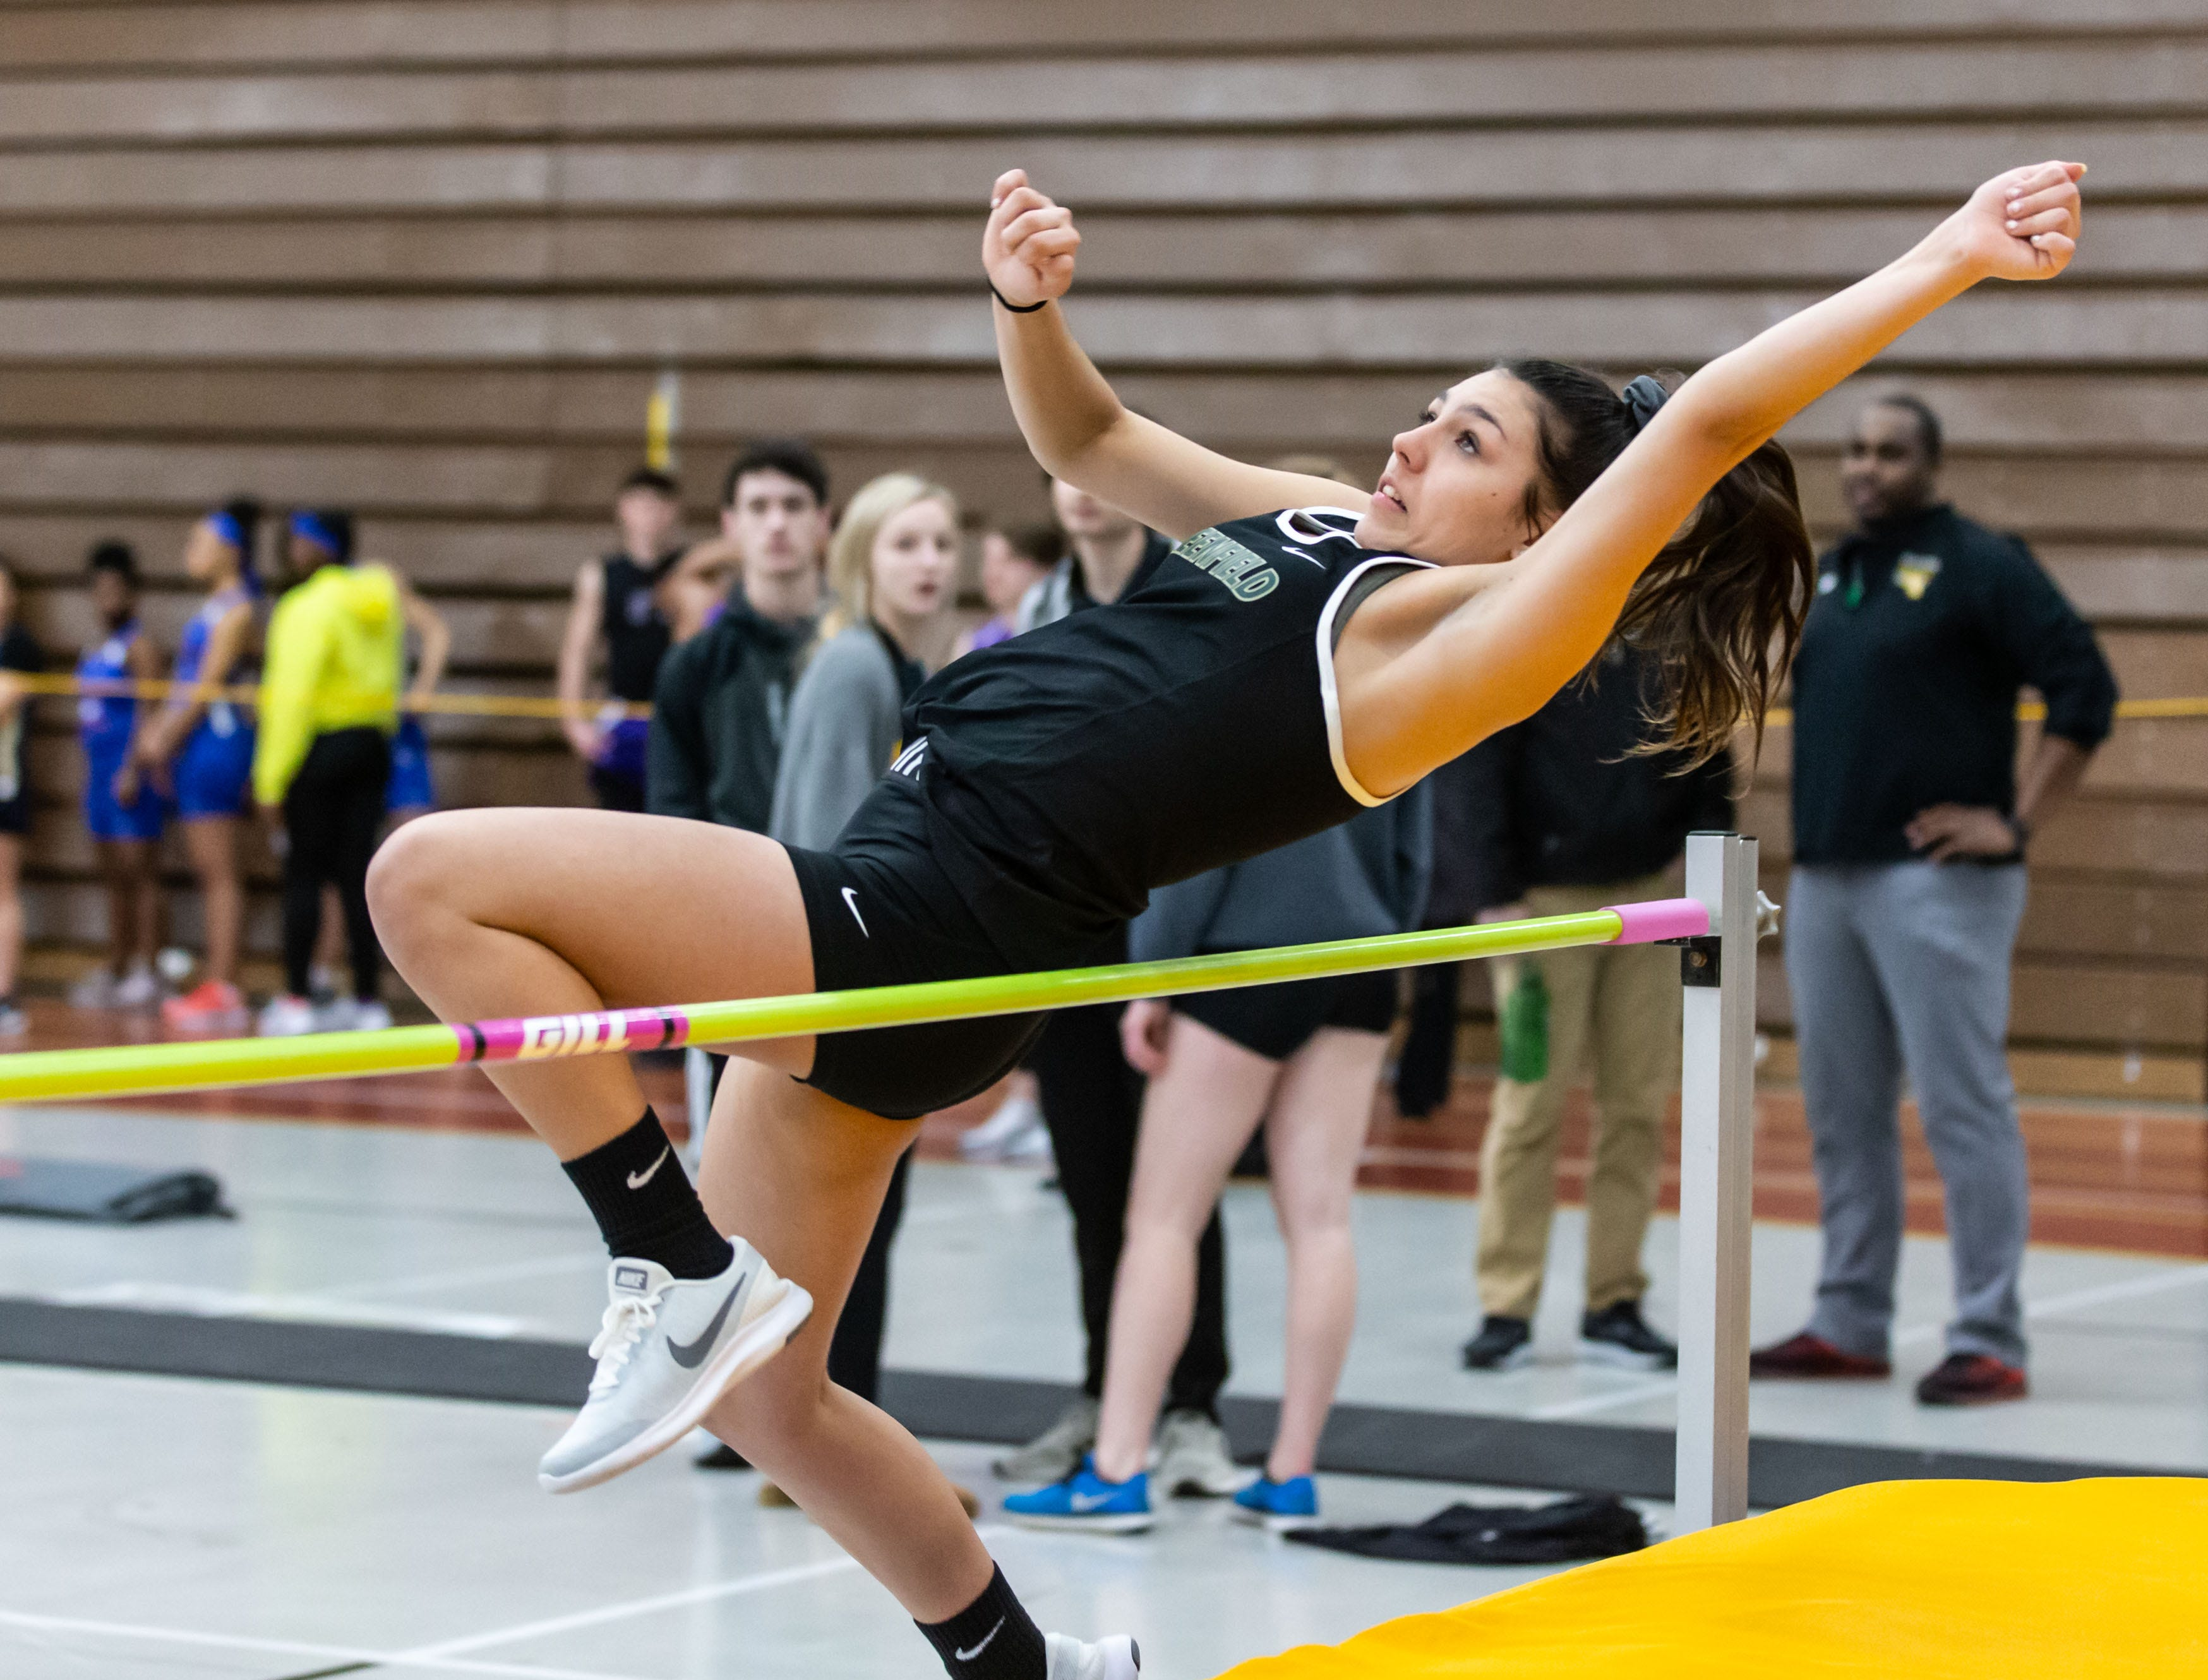 Greenfield's Mariah Teicher competes on the high jump at the Reinhard Bulldog Relays hosted by West Allis Central on Friday, March 15, 2019.